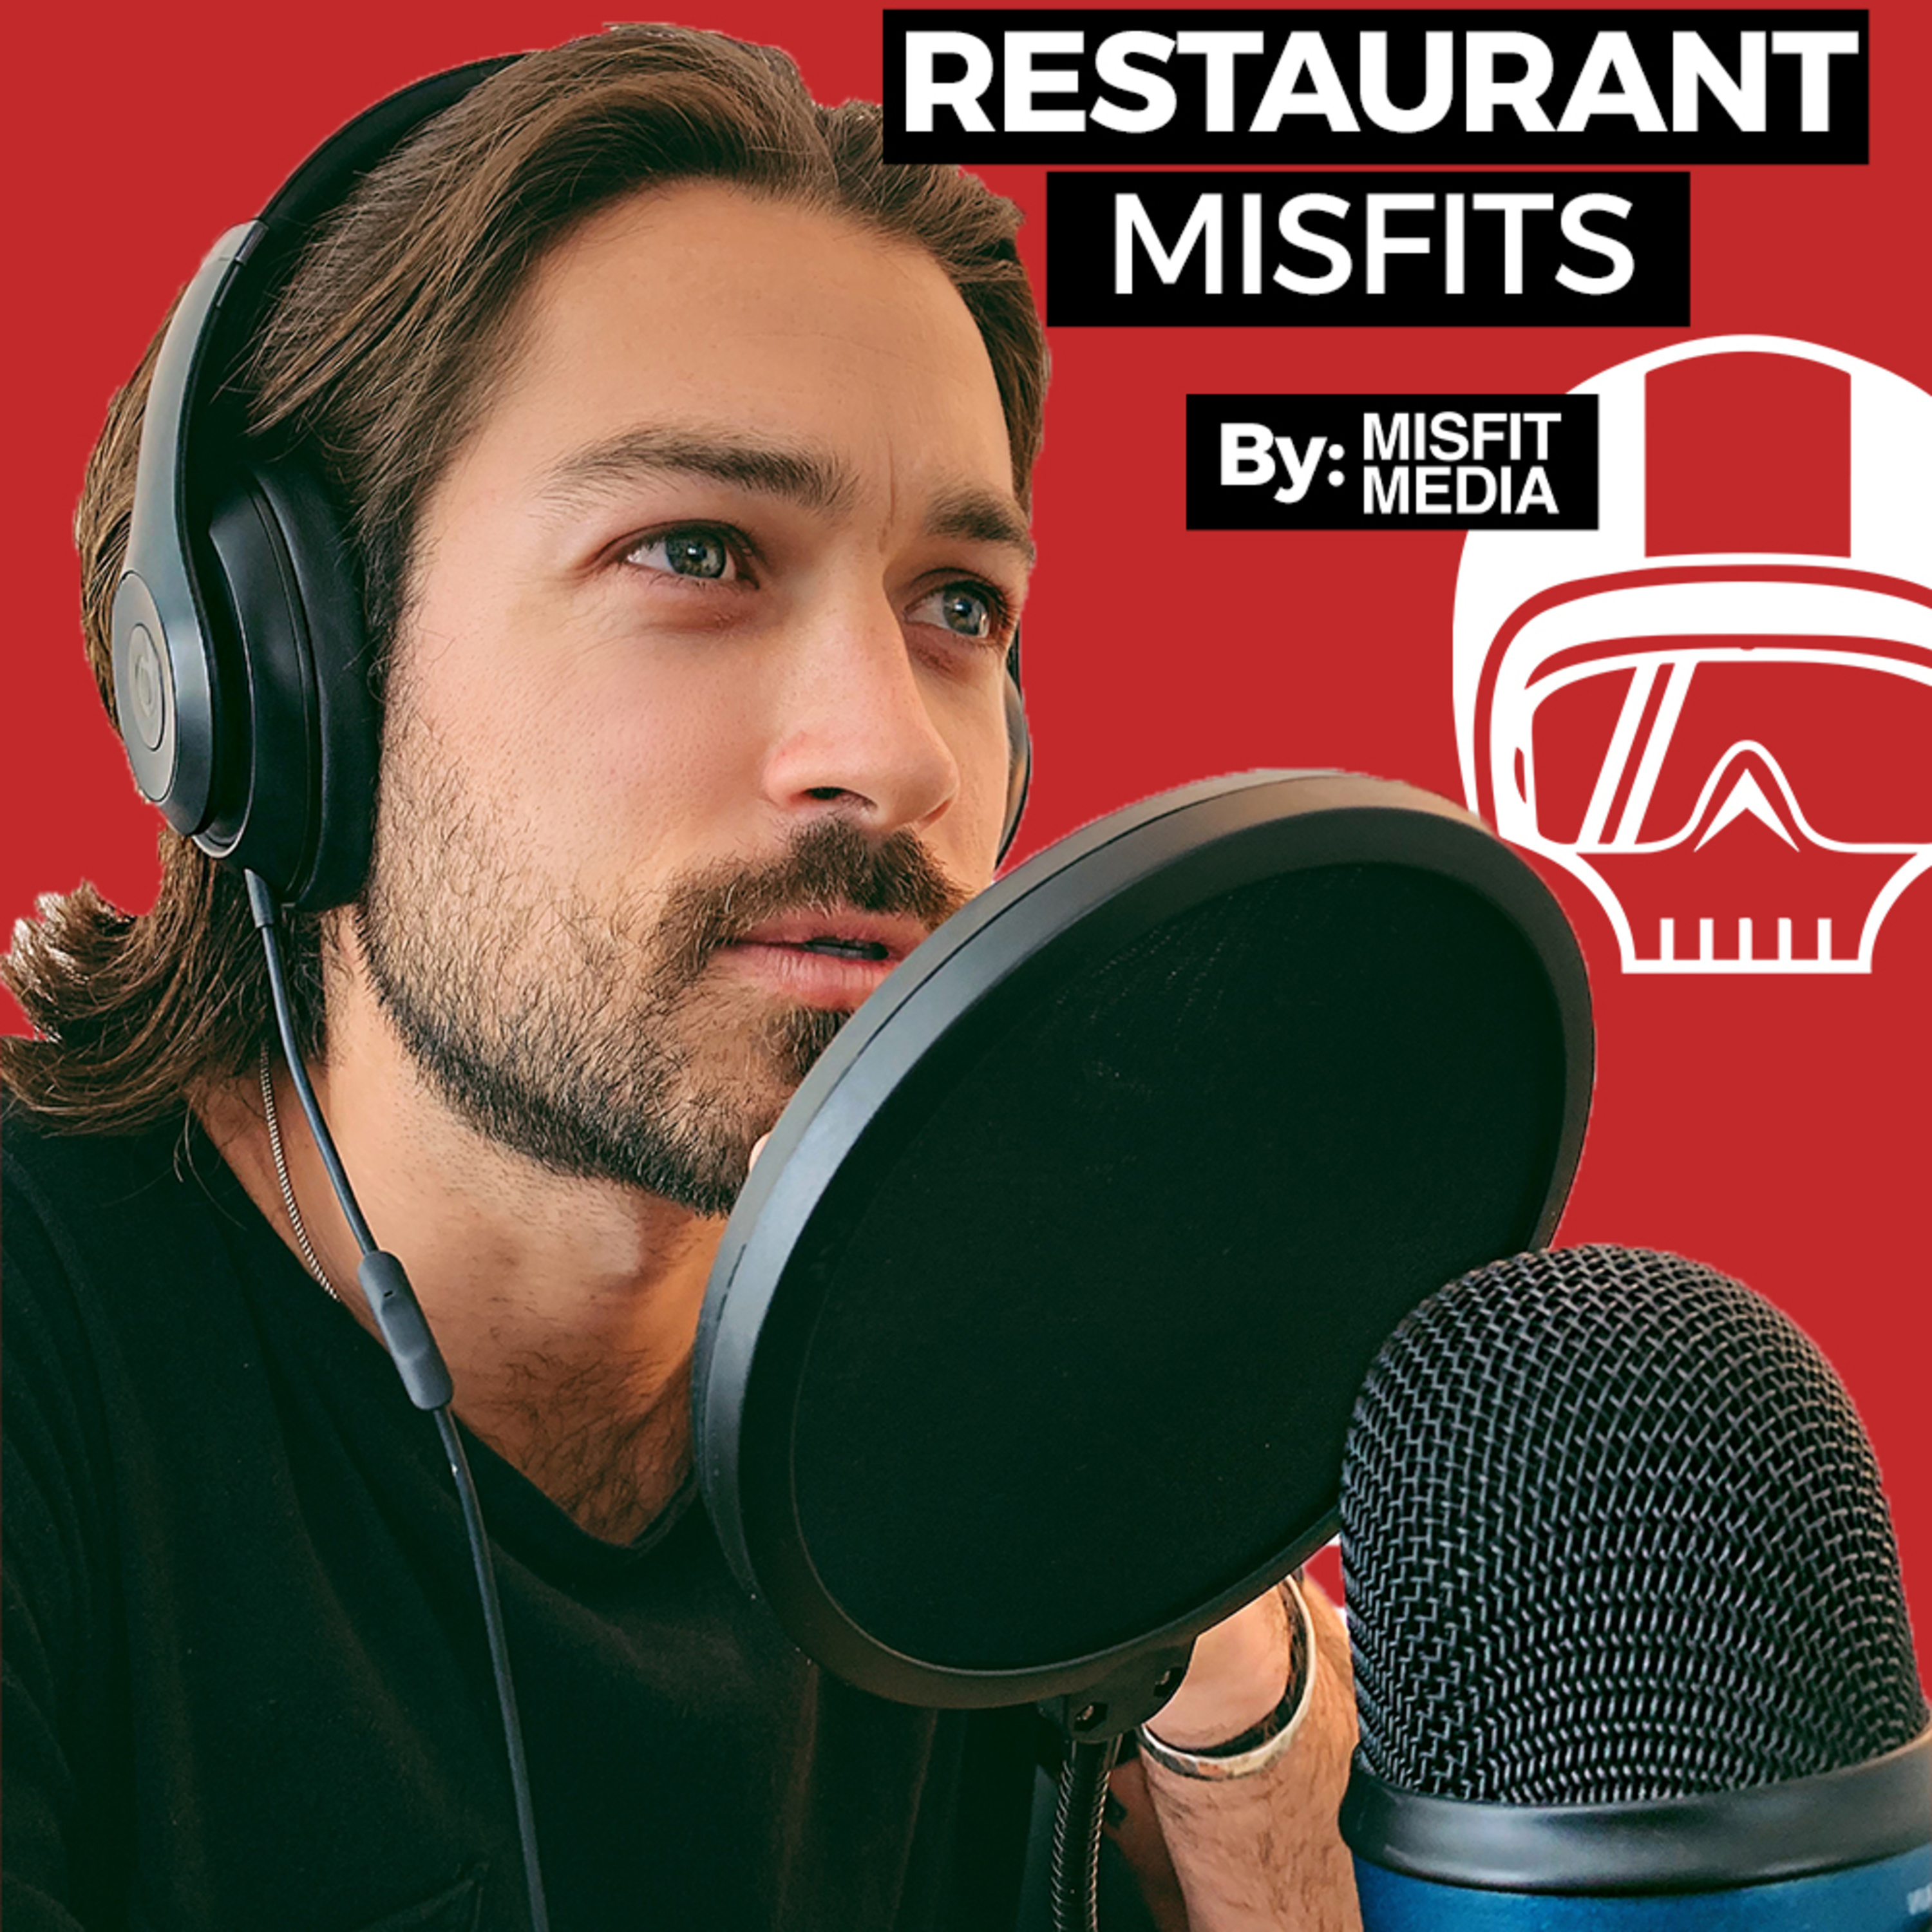 EP14 - Messenger Marketing For Restaurants With Mikael Yang of Manychat